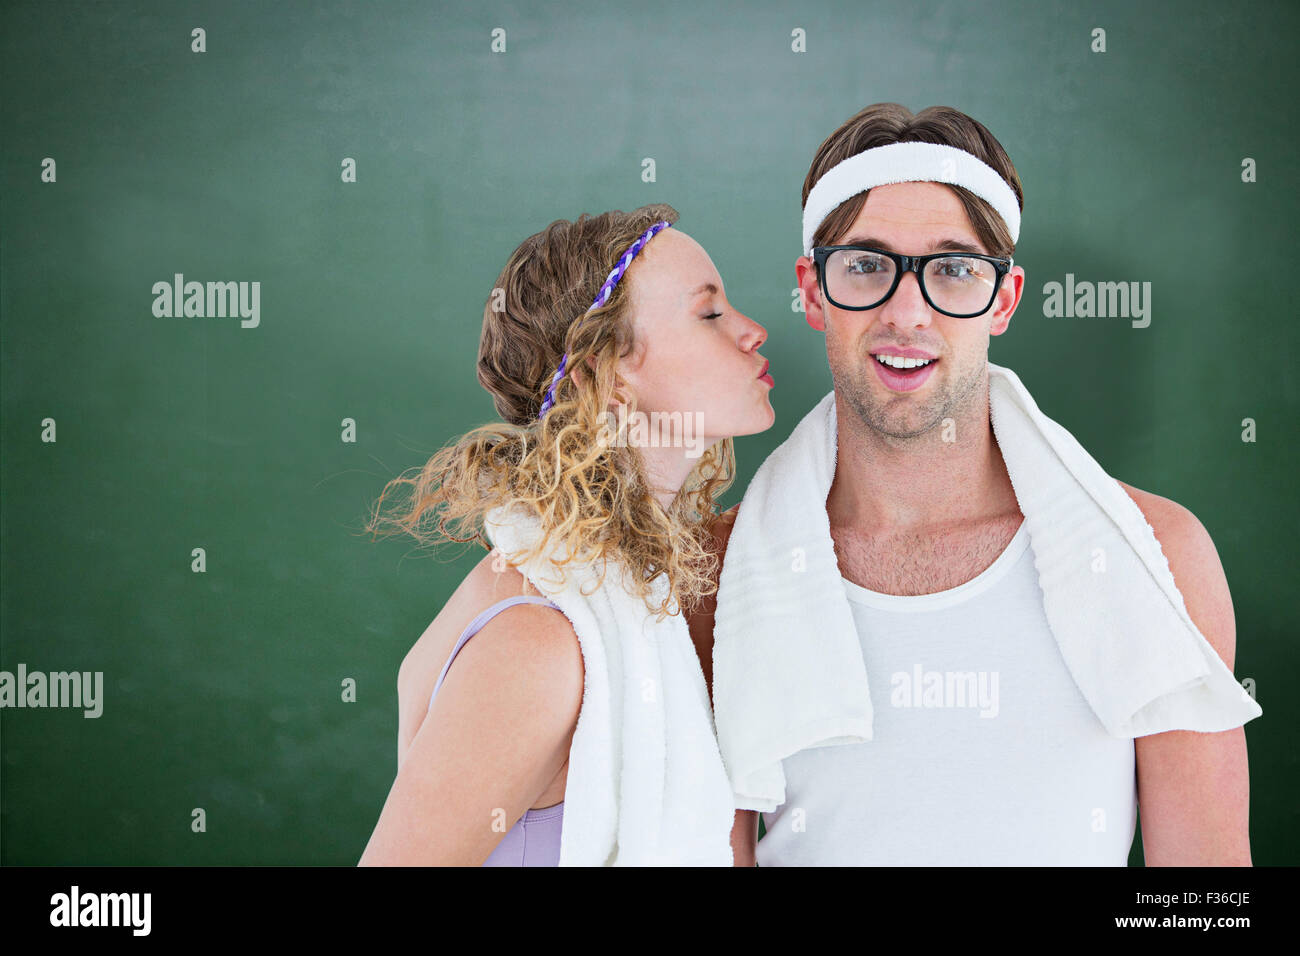 Composite image of geeky hipster kissing her boyfriend - Stock Image